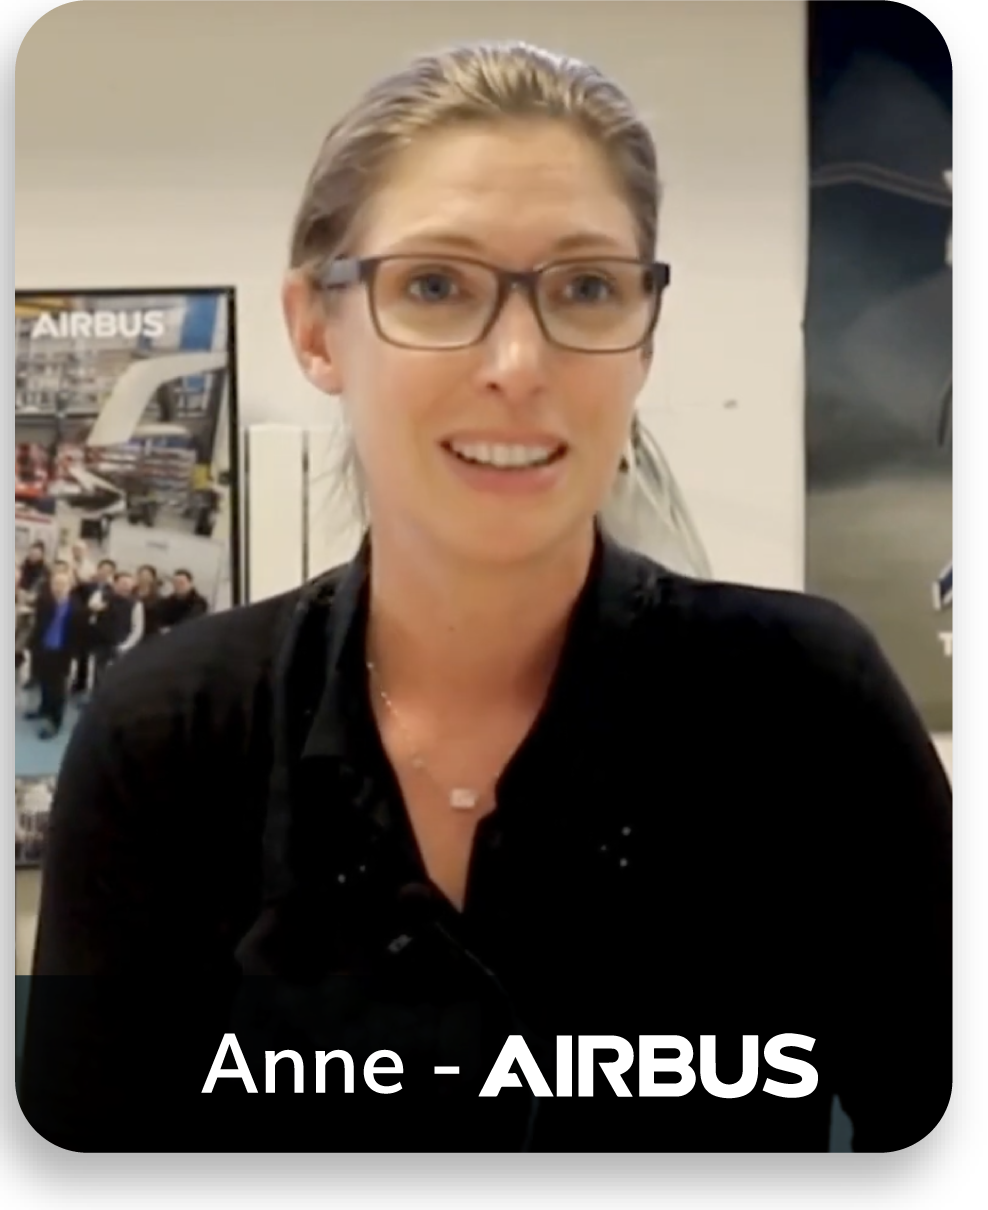 Anne Airbus positive leader